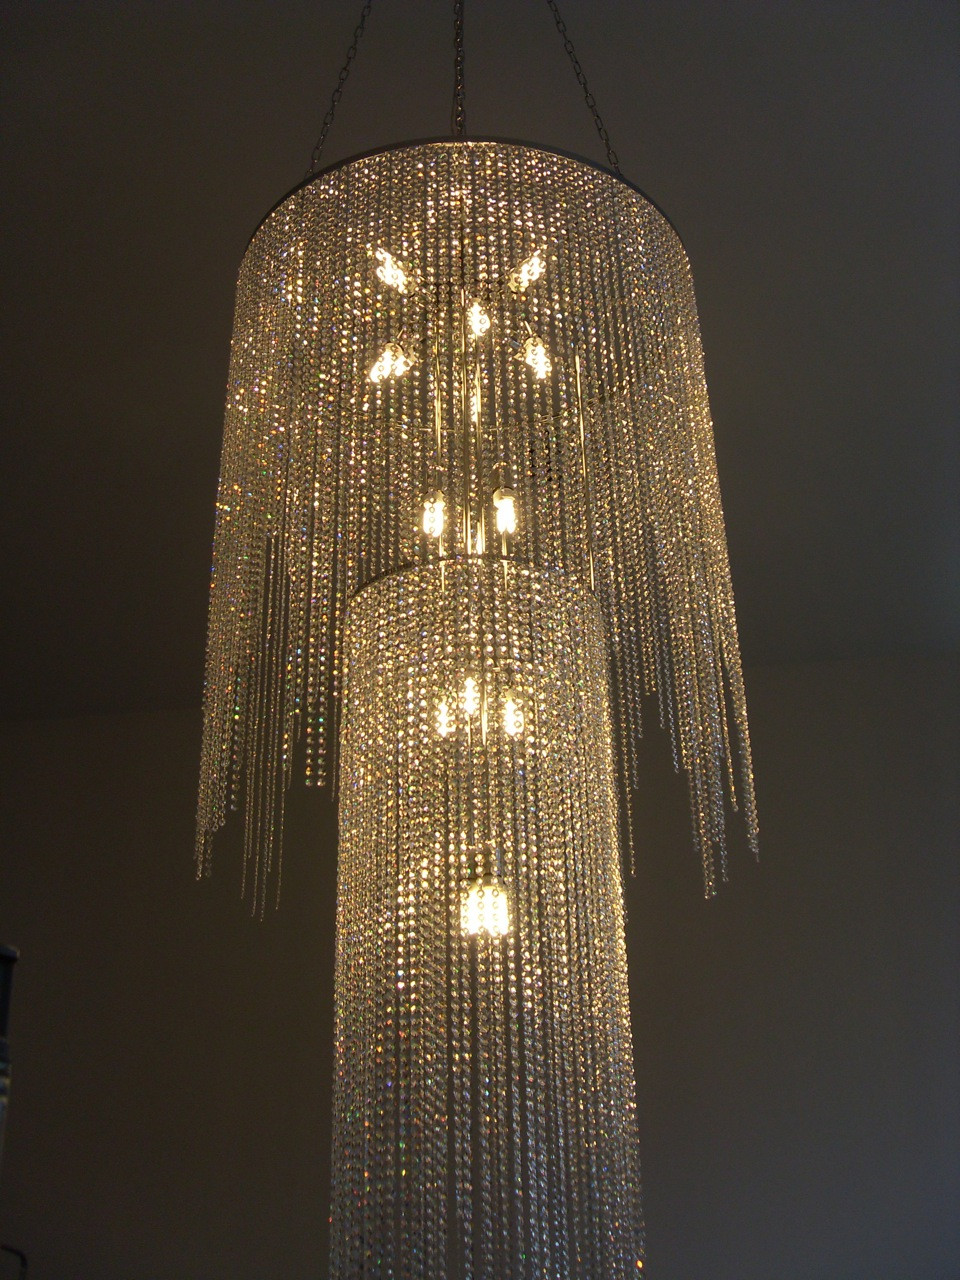 BESPOKE DOUBLE TIER CIRCULAR CHANDELIER